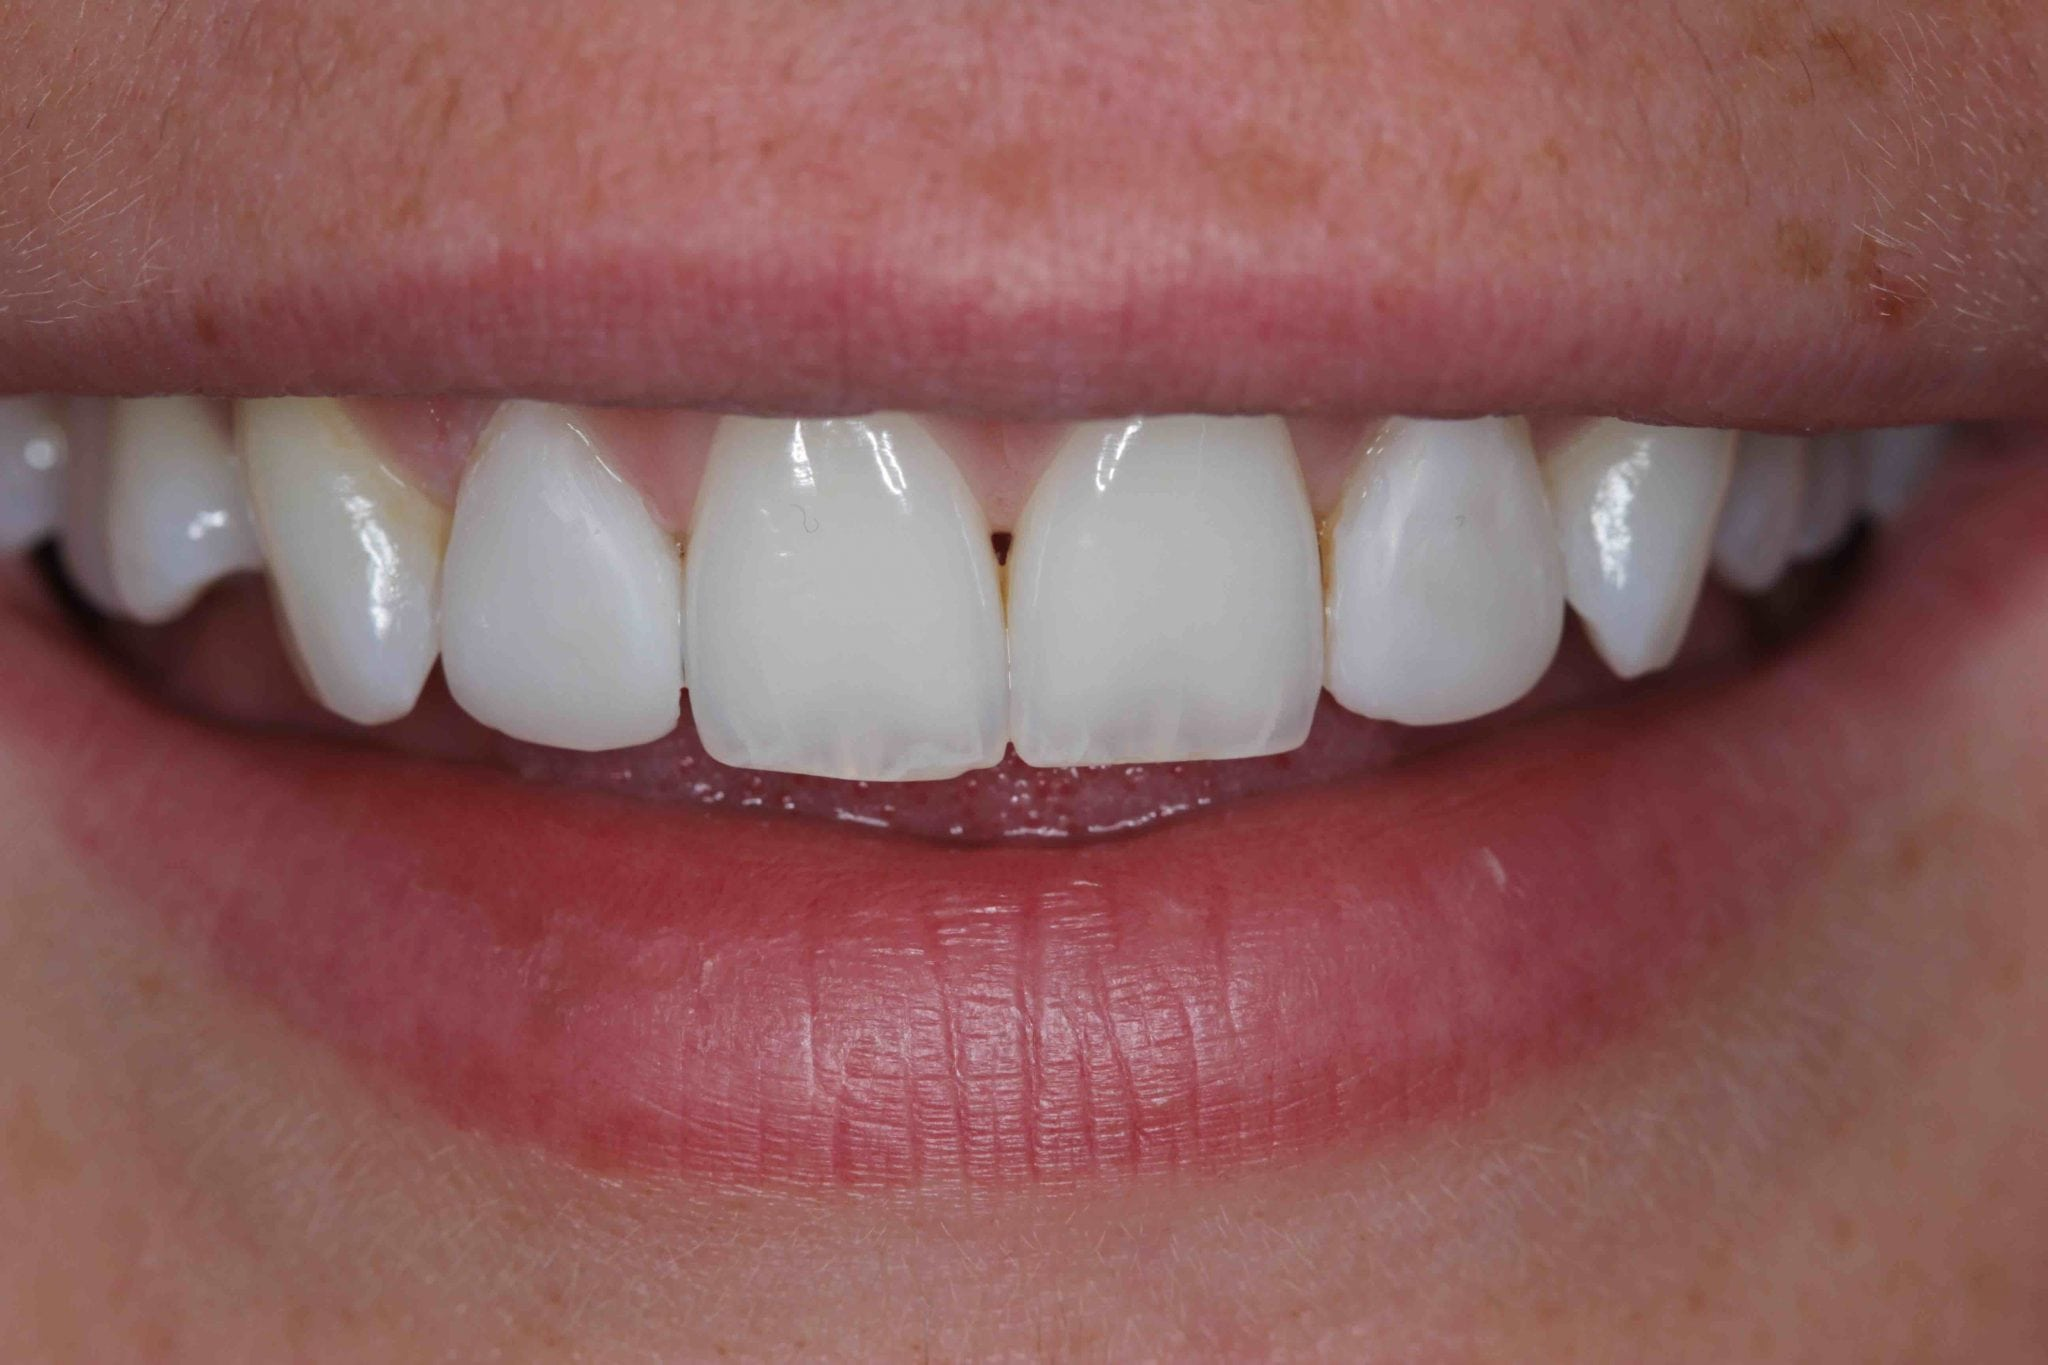 Dental Bonding in Preston Lancashire - Front Teeth After bonding Photos